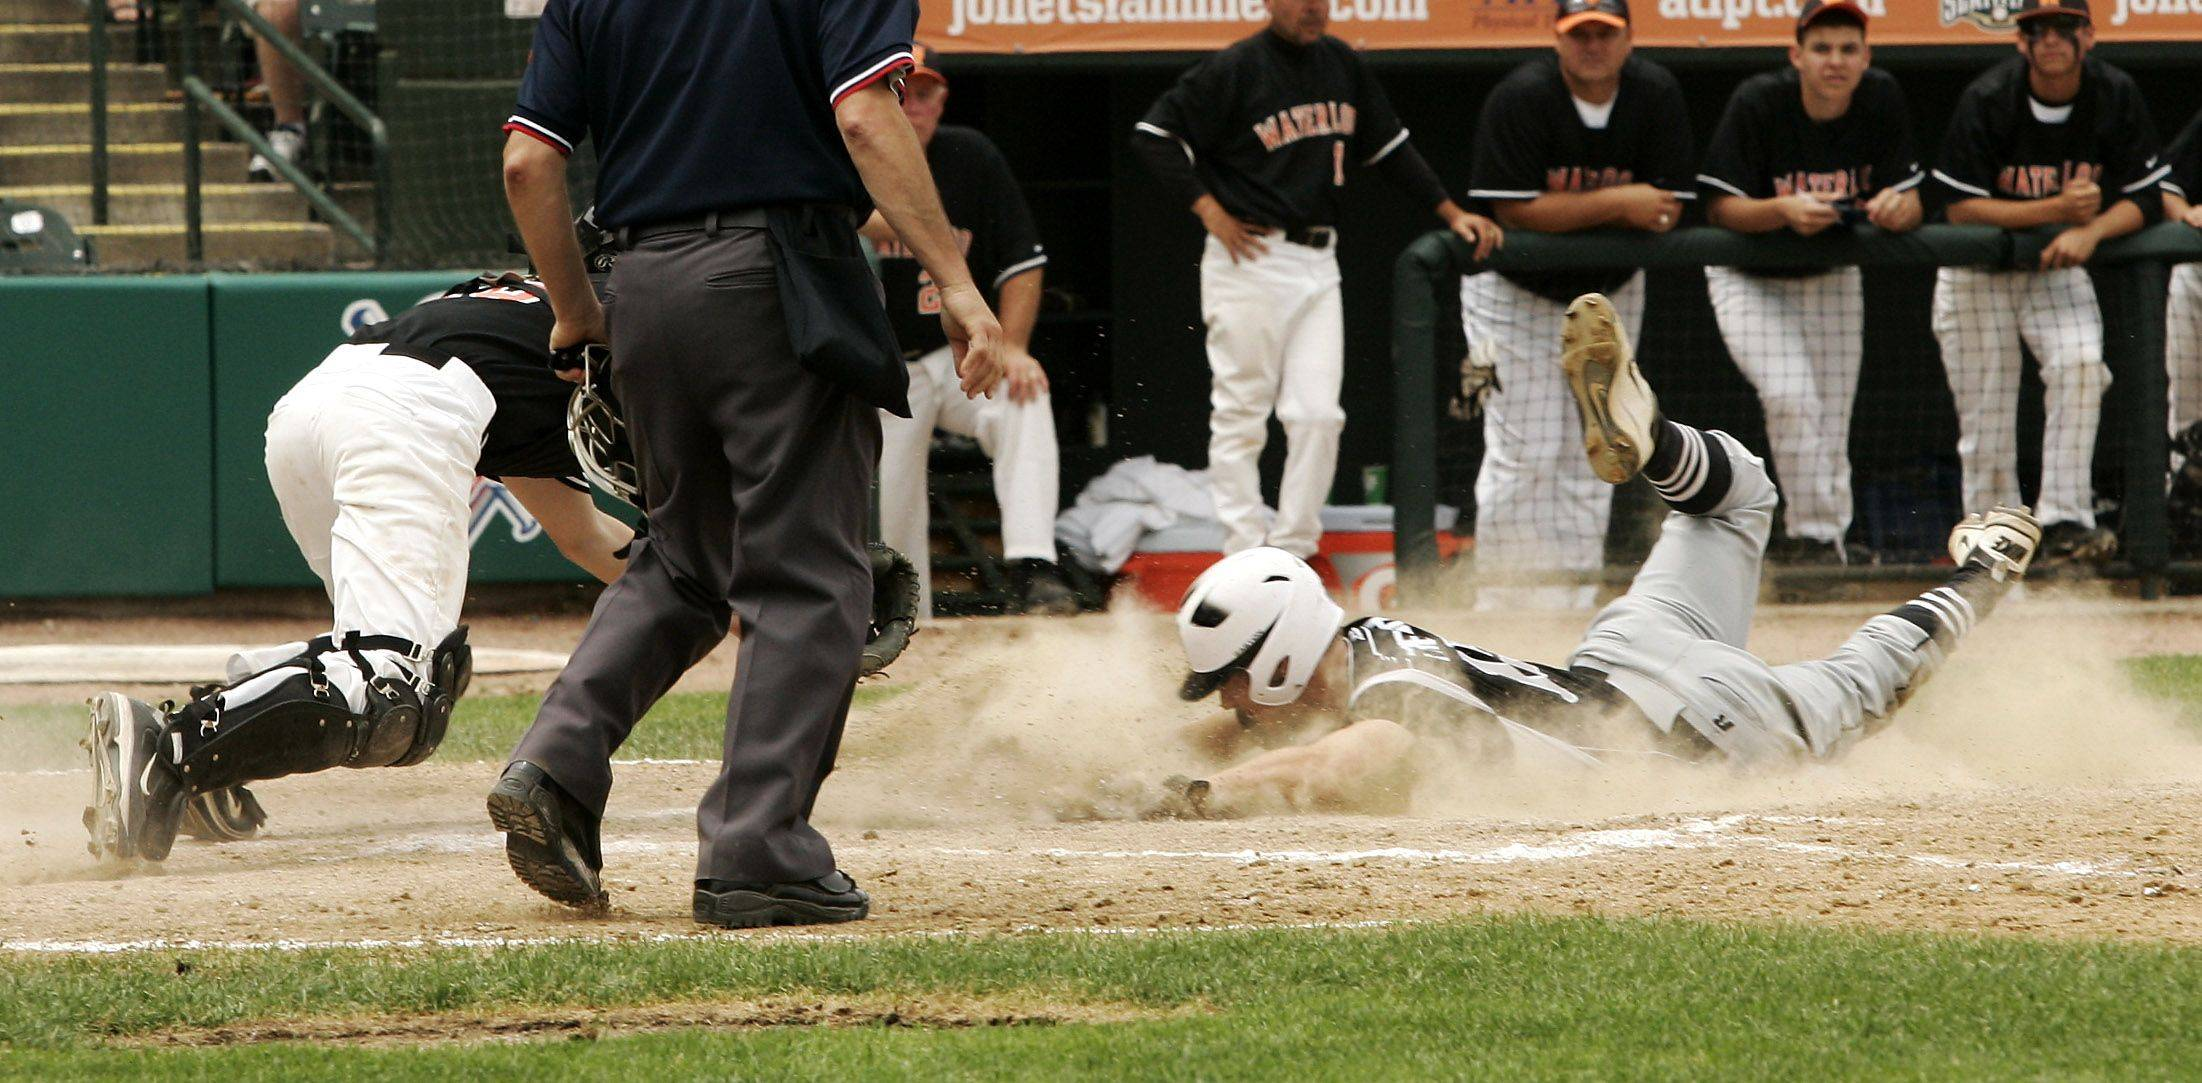 Kaneland runner Drew French slides safely under the tag at home by Waterloo catcher Lucus Wetzler .